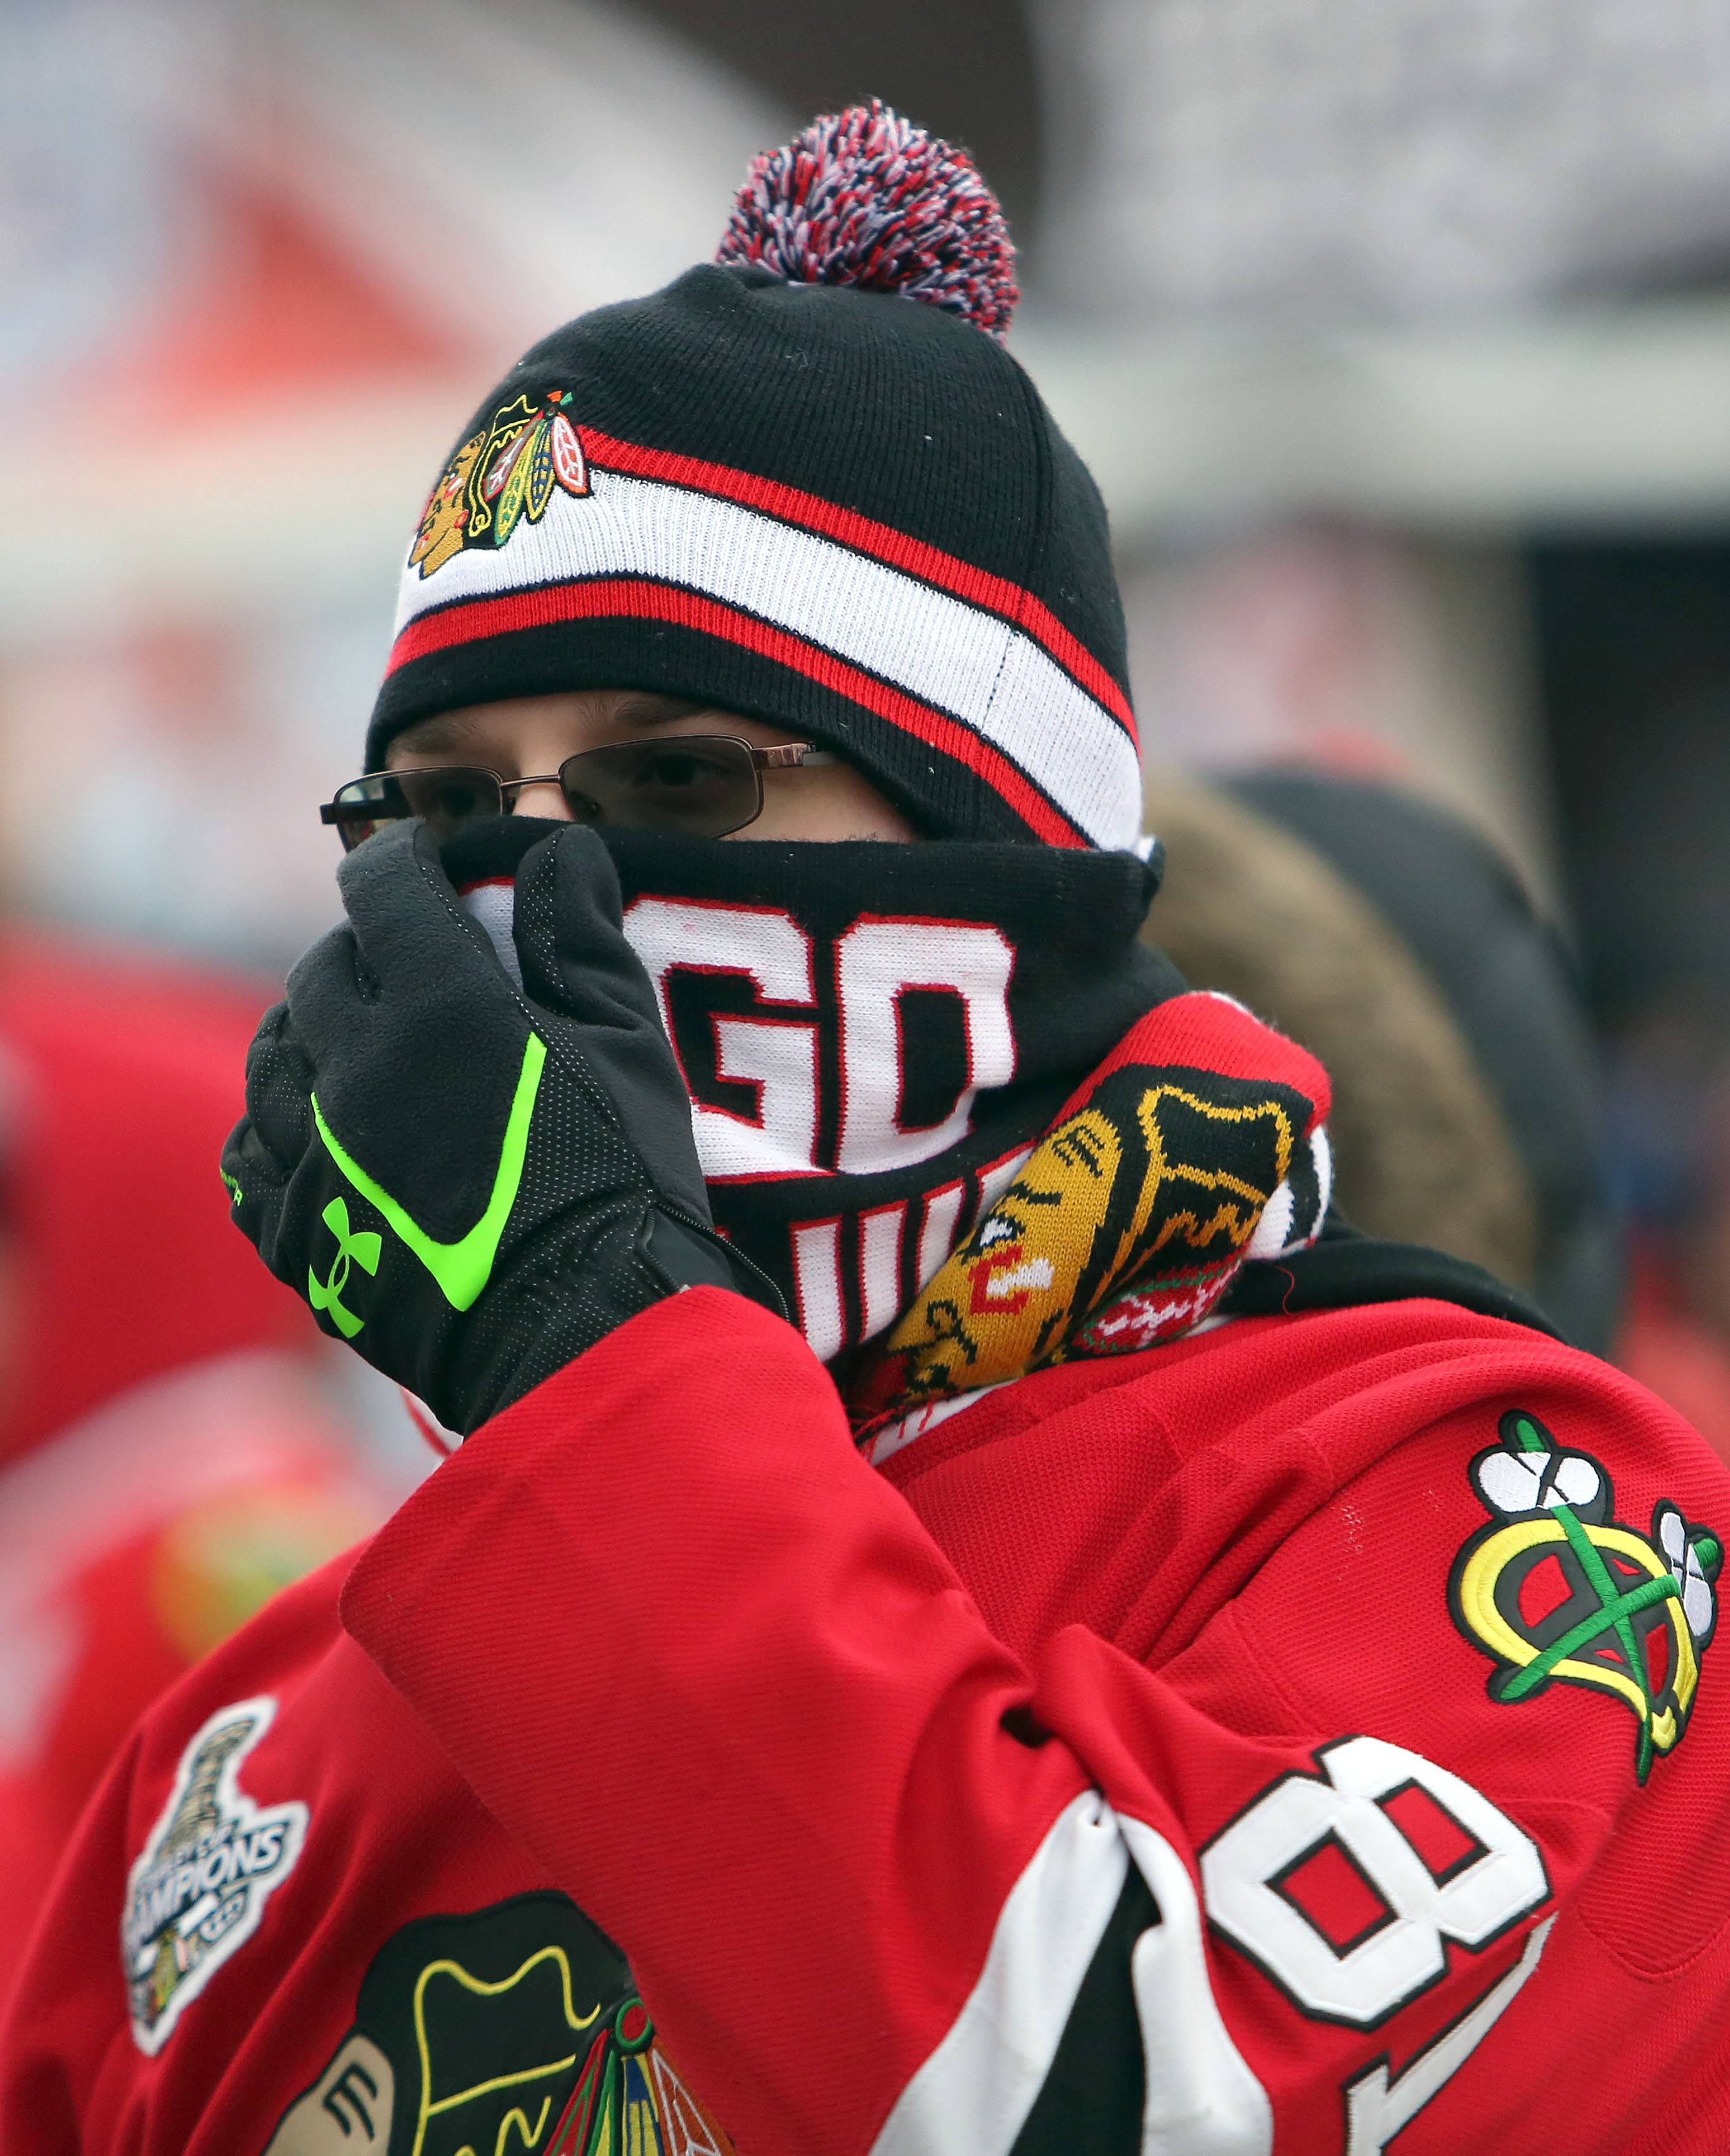 Tim Buczkowski of Pittsburg, Pennsylvania covers his face as he hangs out in the spectator plaza prior to the Blackhawks vs Penguins NHL Stadium Series Saturday at Soldier Field.